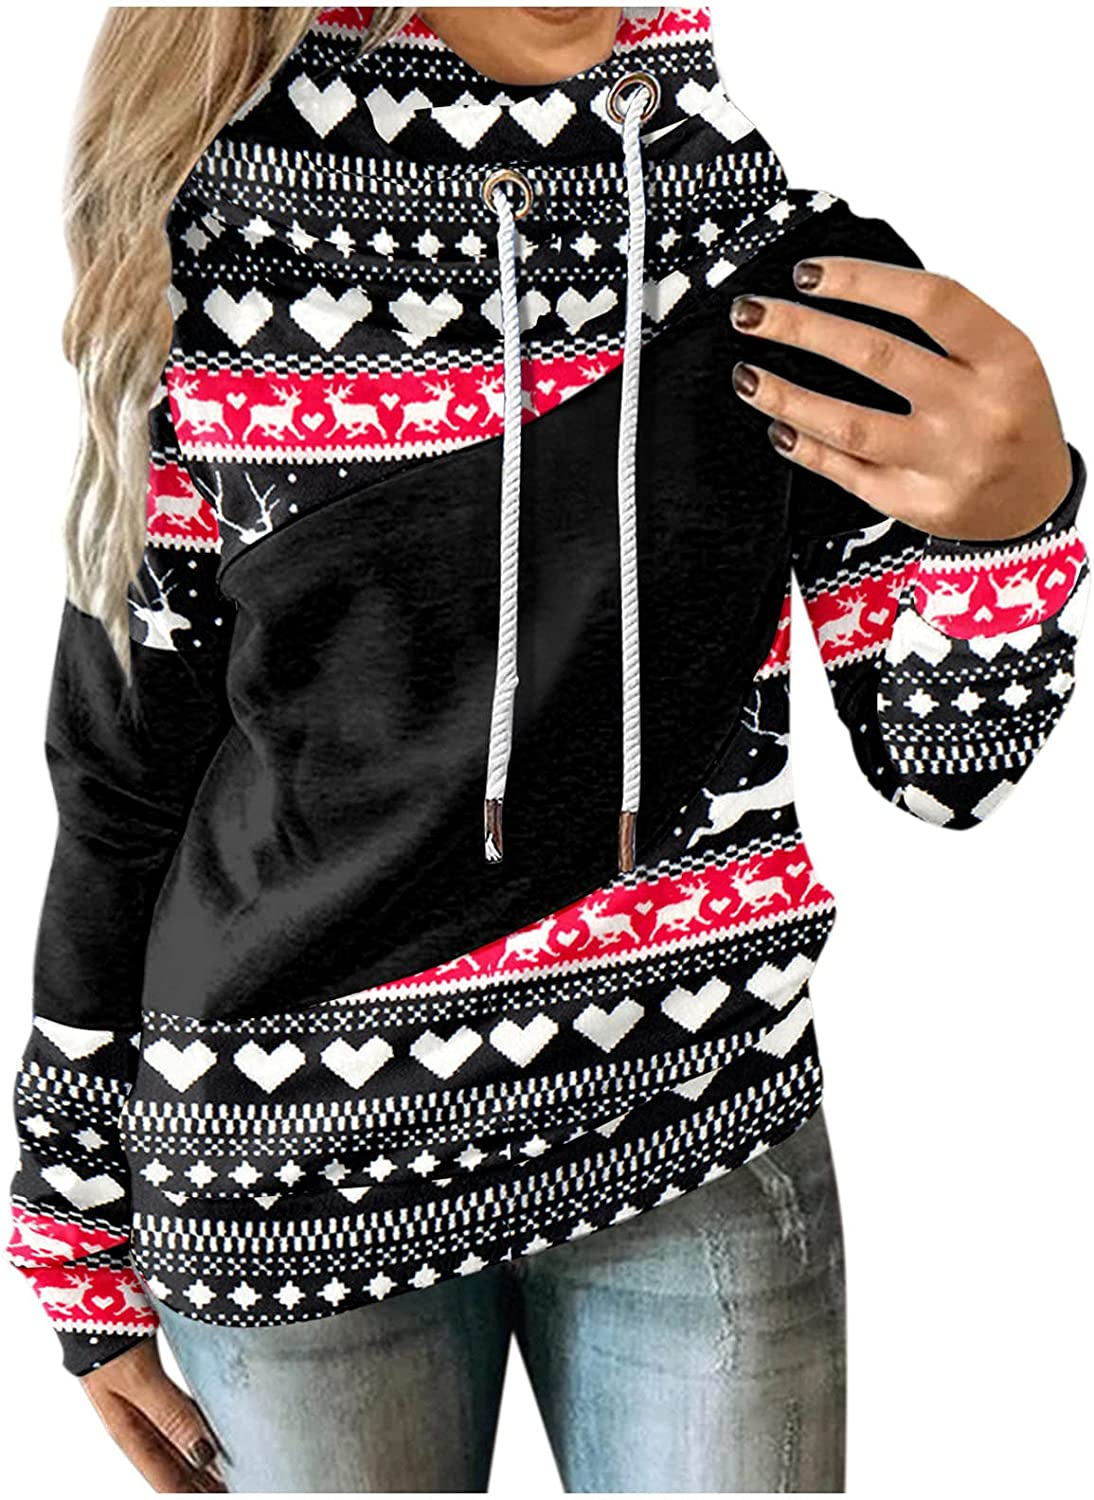 Christmas Safety and trust Hoodies Sale for Women Printed Gnome Graphic Reindeer Tops